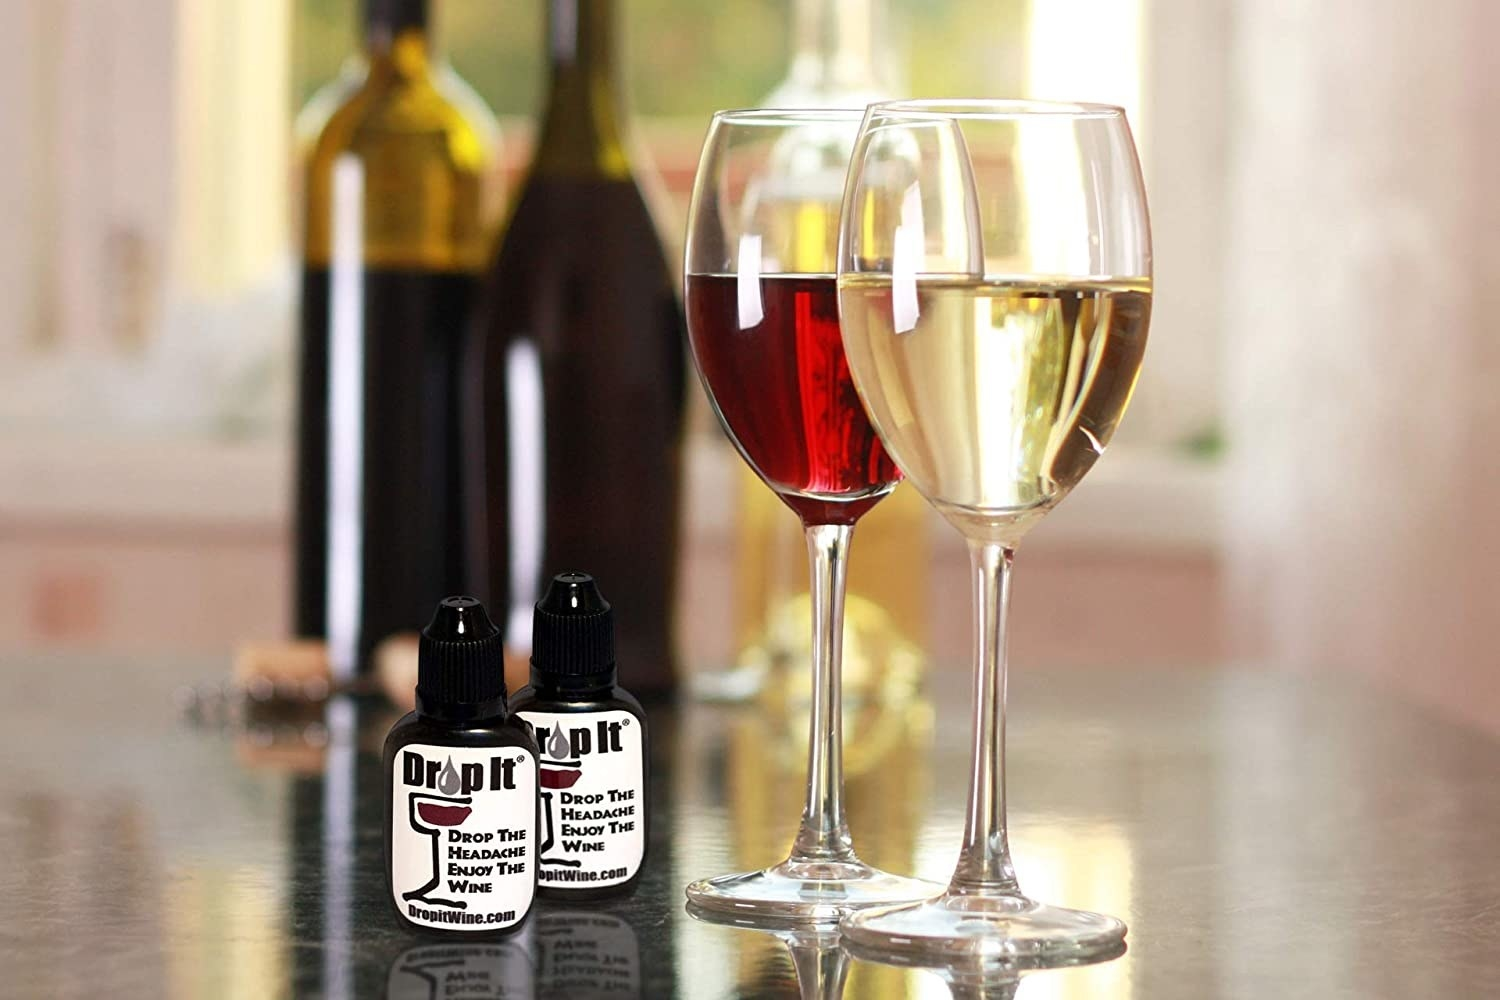 The wine drops can be used in red or white wine